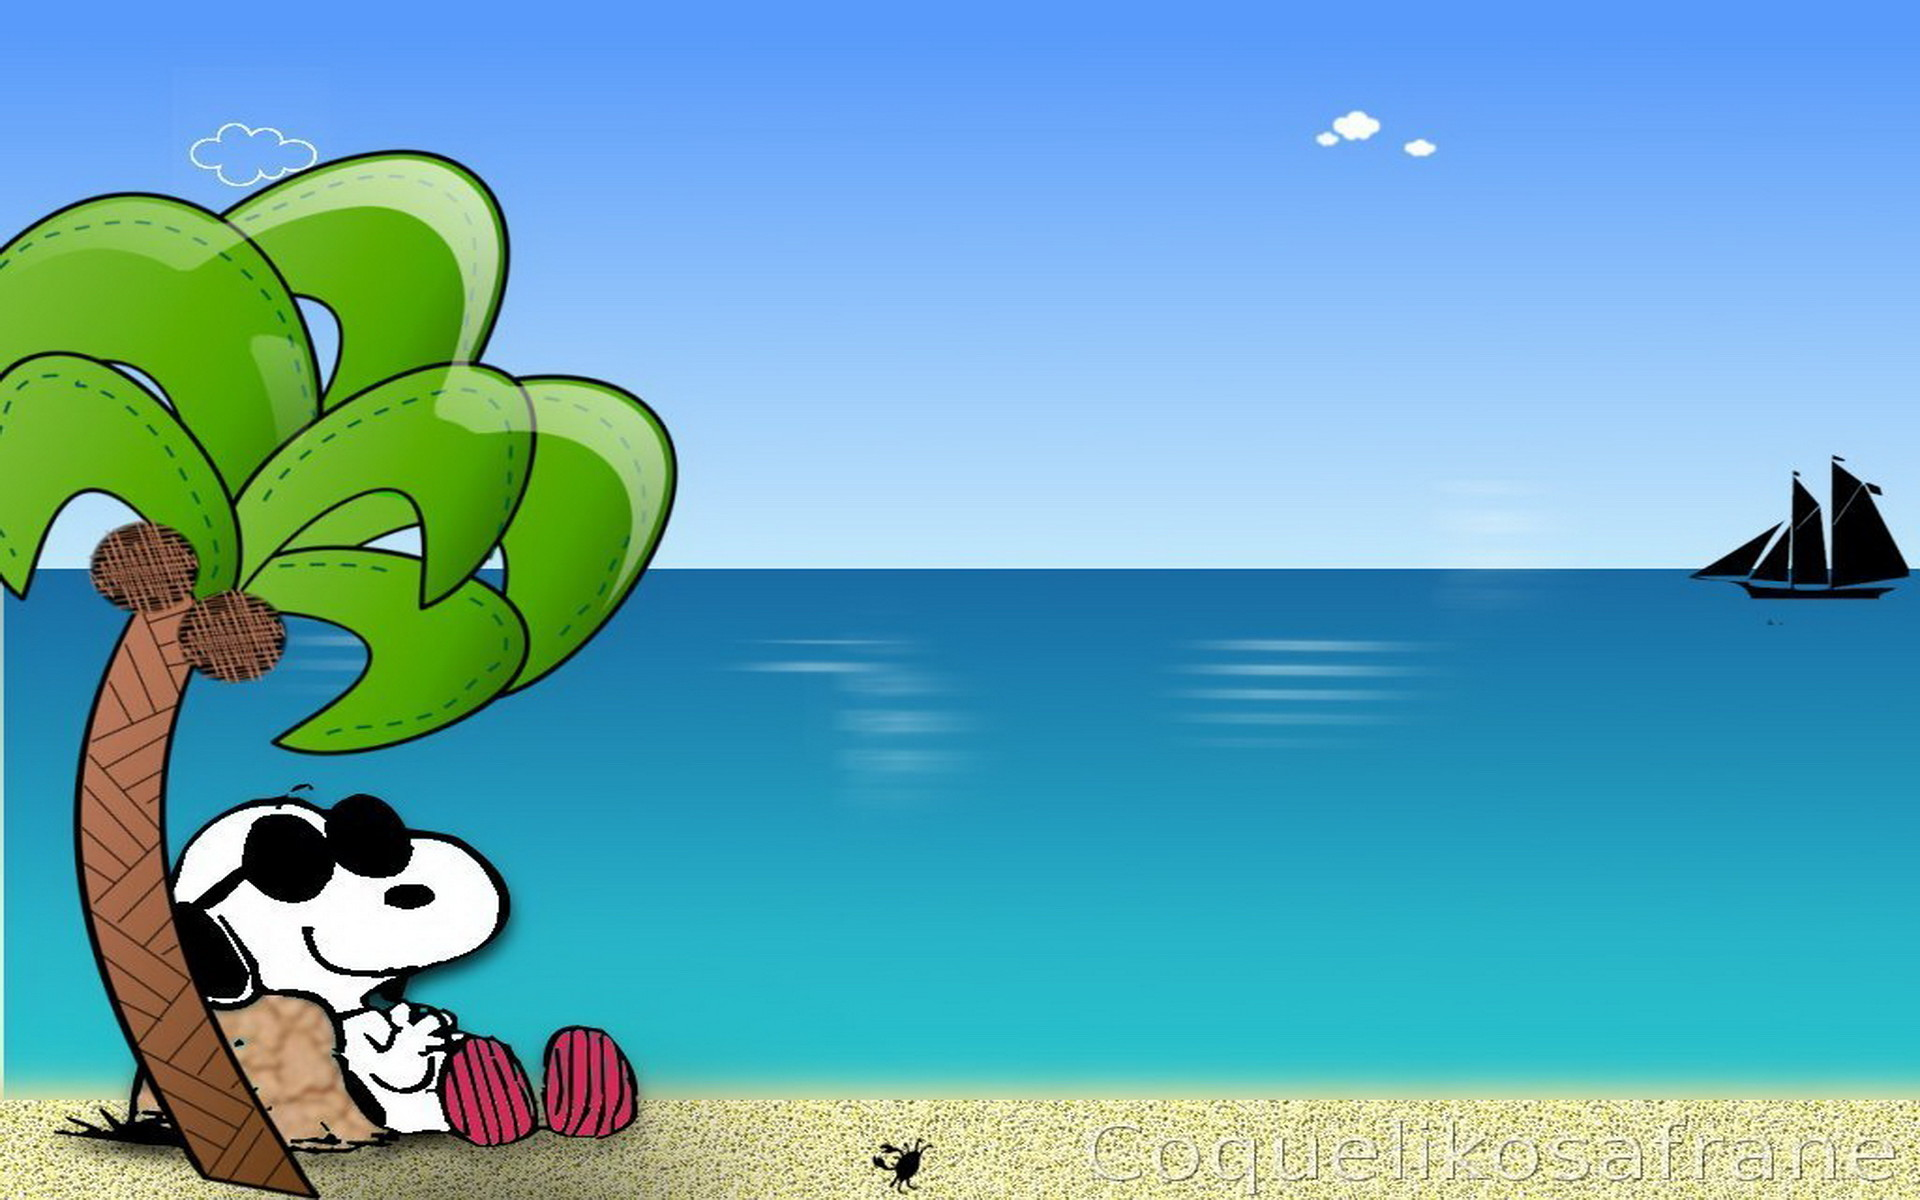 1920x1200 Snoopy Wallpapers, Snoopy Wallpaper 49.jpg